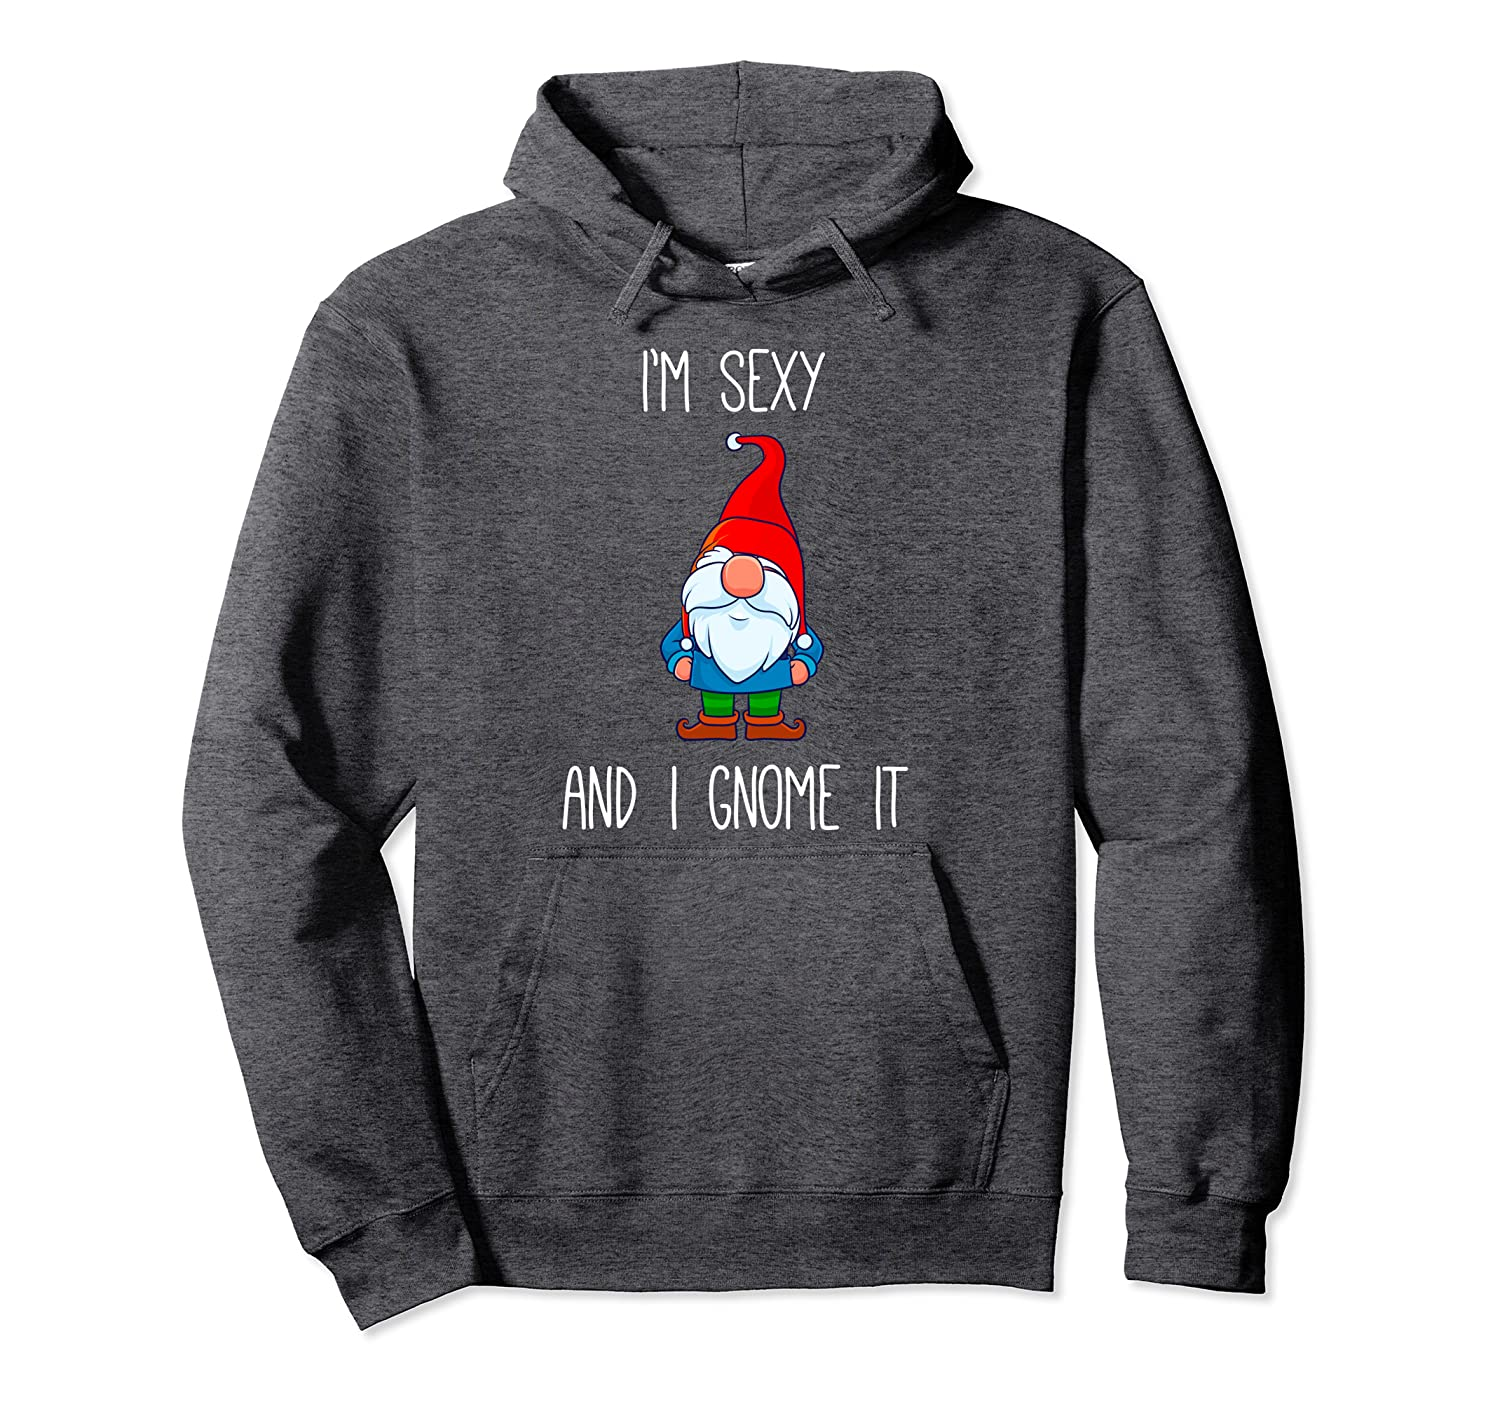 I'm Sexy and I Gnome It, Funny Garden Gnomes Gift Men Women Pullover Hoodie-TH